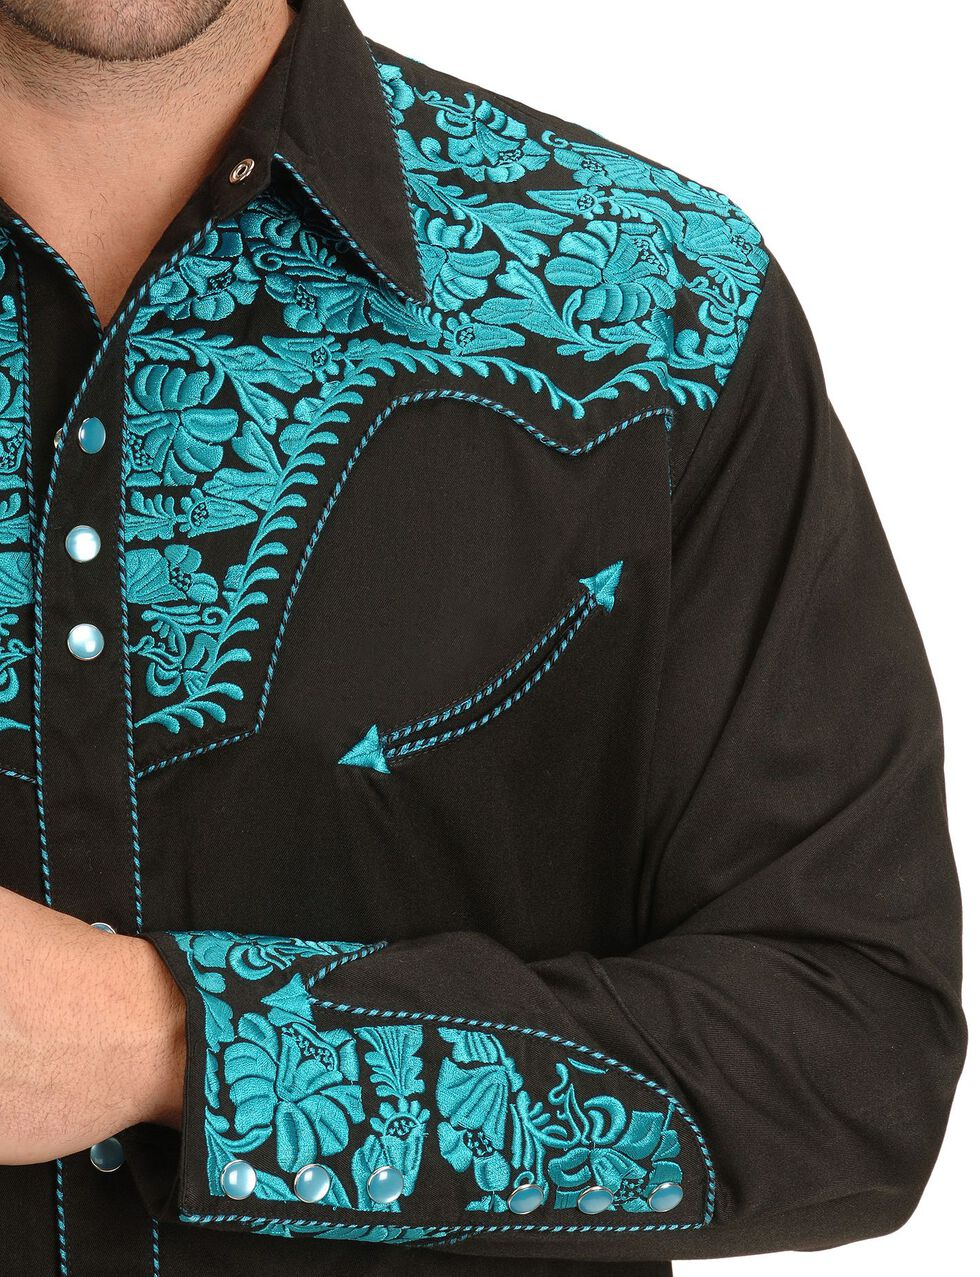 P-634X TRC Scully Turquoise Embroidery Retro Western Shirt Big and Tall